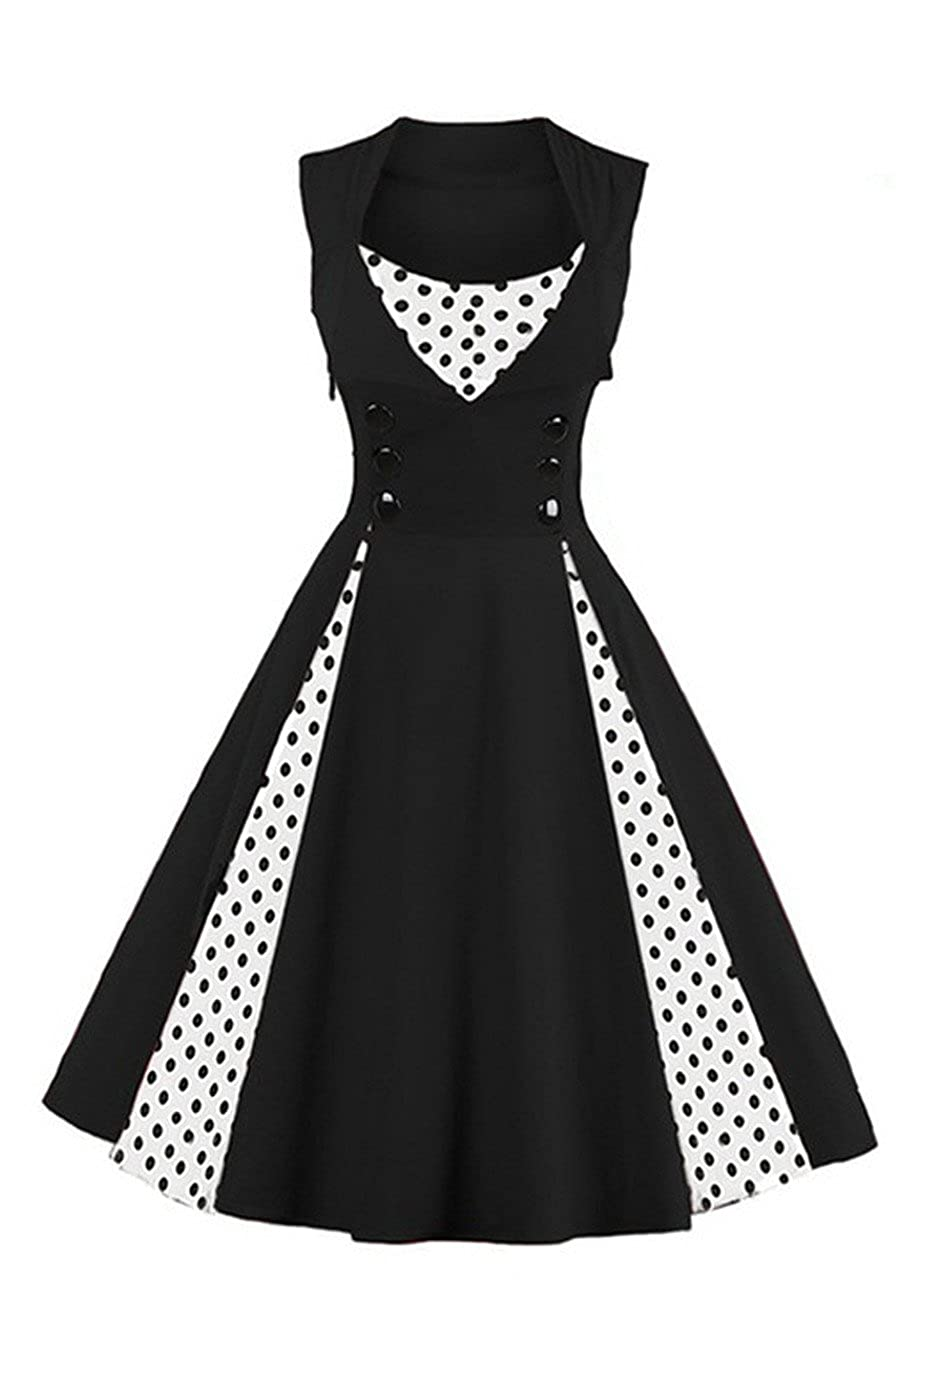 TALLA M. VERNASSA 50s Vestidos Vintage,Mujeres 1950s Vintage A-Line Rockabilly Clásico Verano Dress for Evening Party Cocktail, Multicolor, S-Plus Size 4XL 1357-puntos Negros